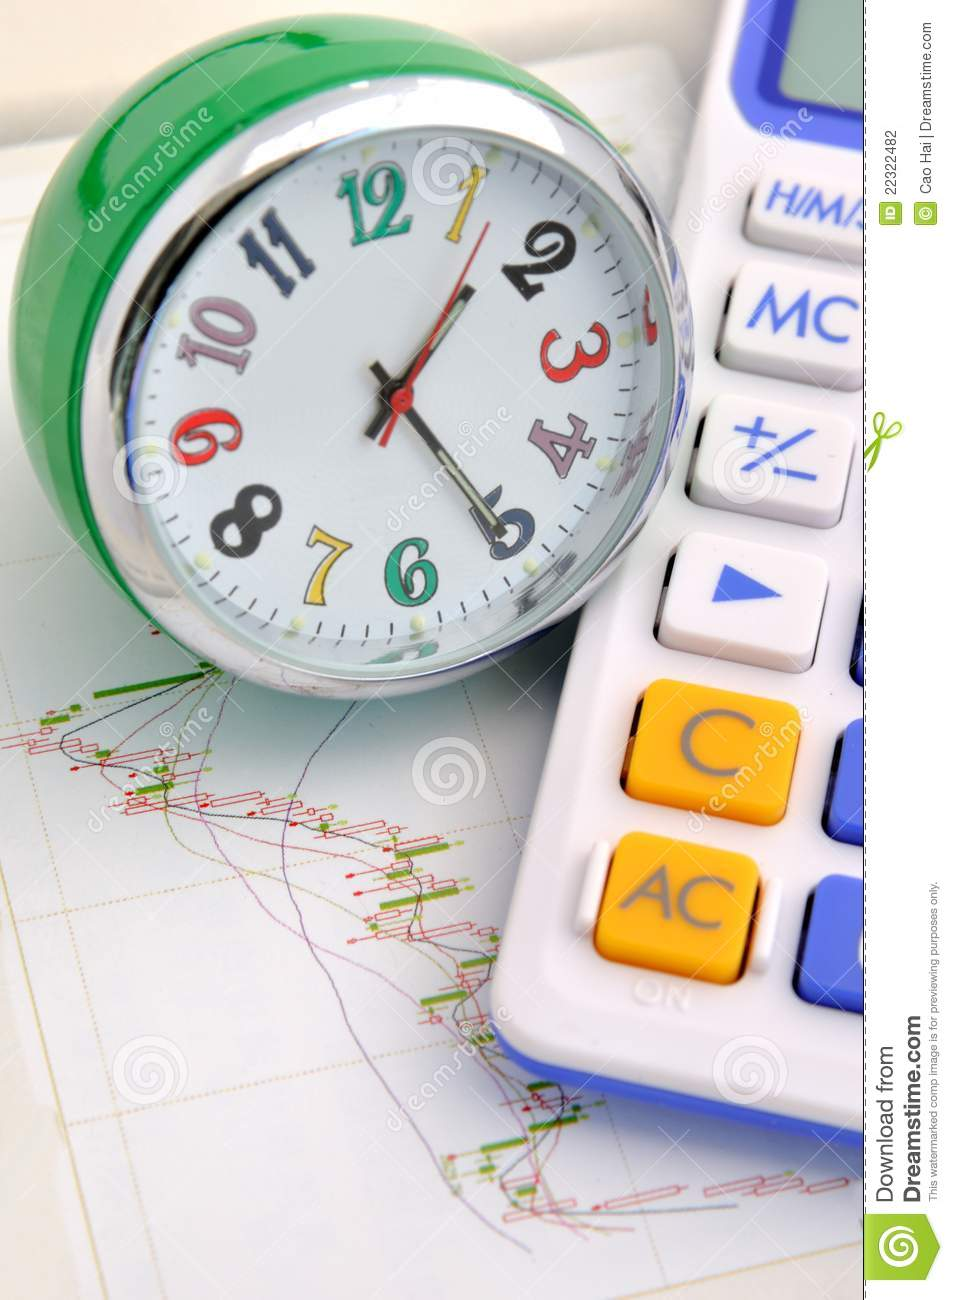 Clock And Calculator On Stock Graph Stock Photo - Image of